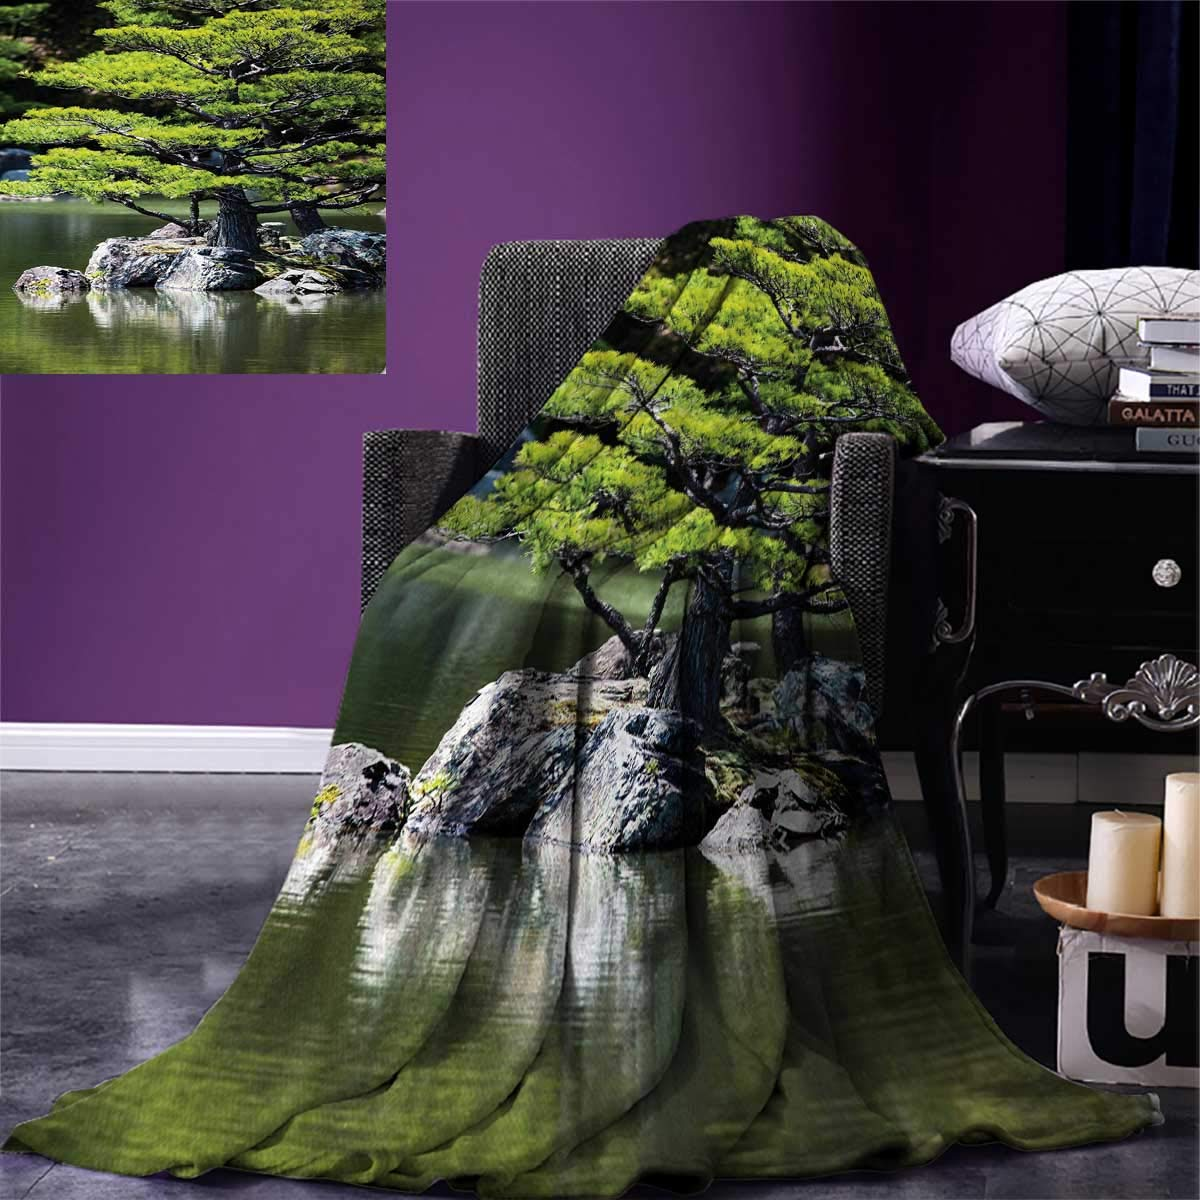 Japanese Digital Printing Blanket Pine Tree in Lake with Stones Japanese Organic Nature Scenery with Asian Garden Theme Summer Quilt Comforter 80''x60'' Green